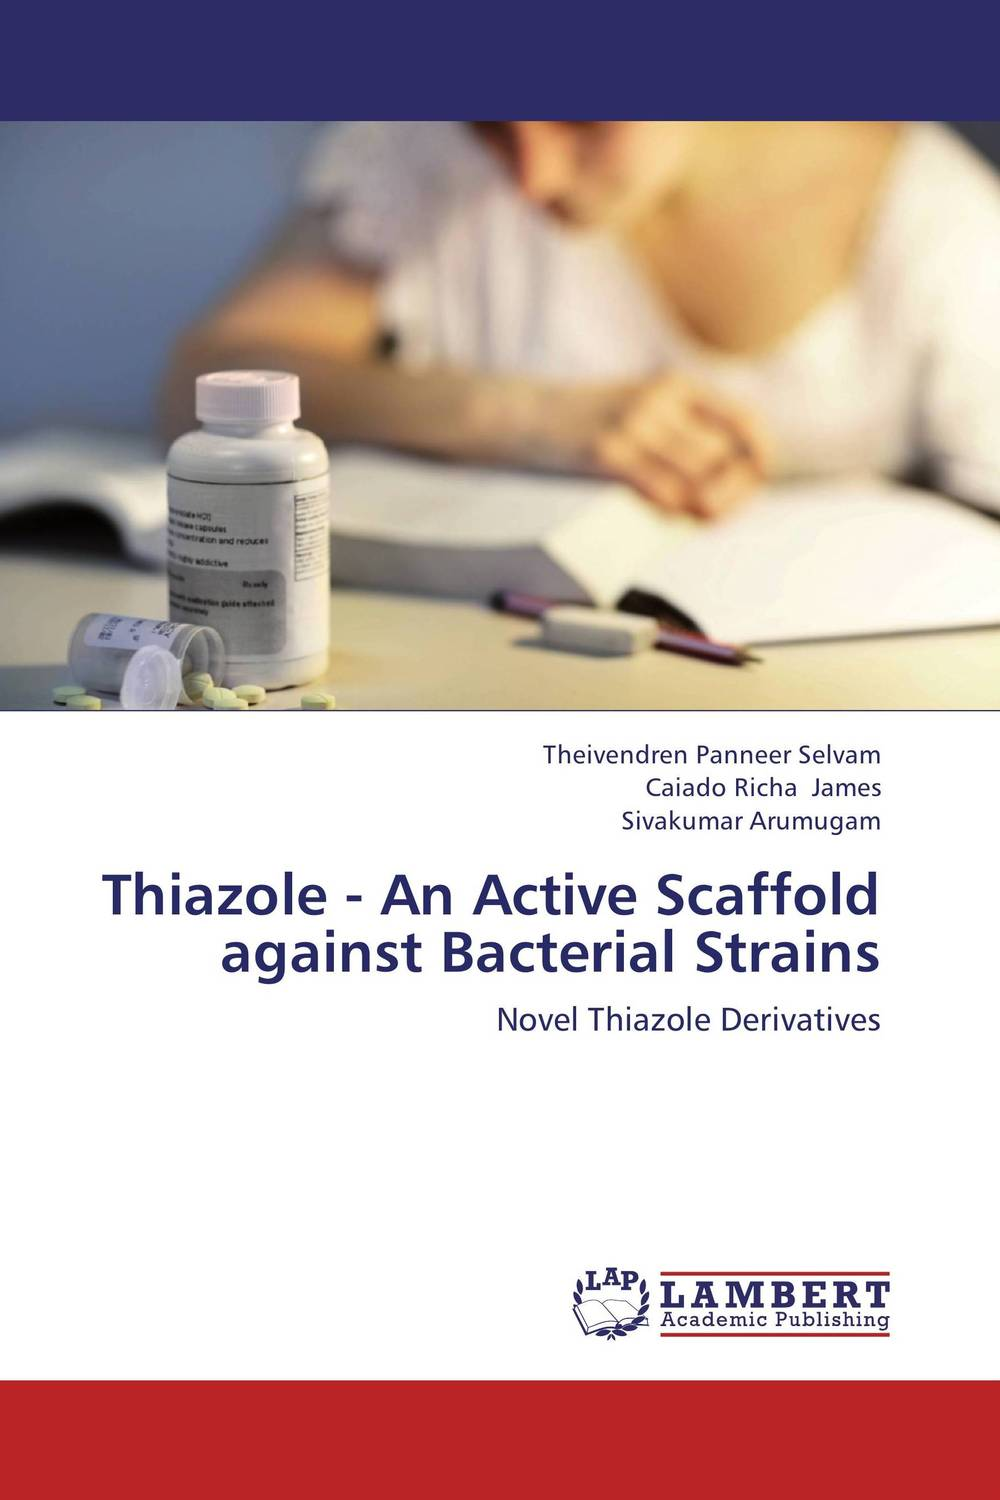 Thiazole - An Active Scaffold against Bacterial Strains theivendren panneer selvam s n mamledesai and fadte pooja rajaram alias fotto importance of quinazoline against cancer